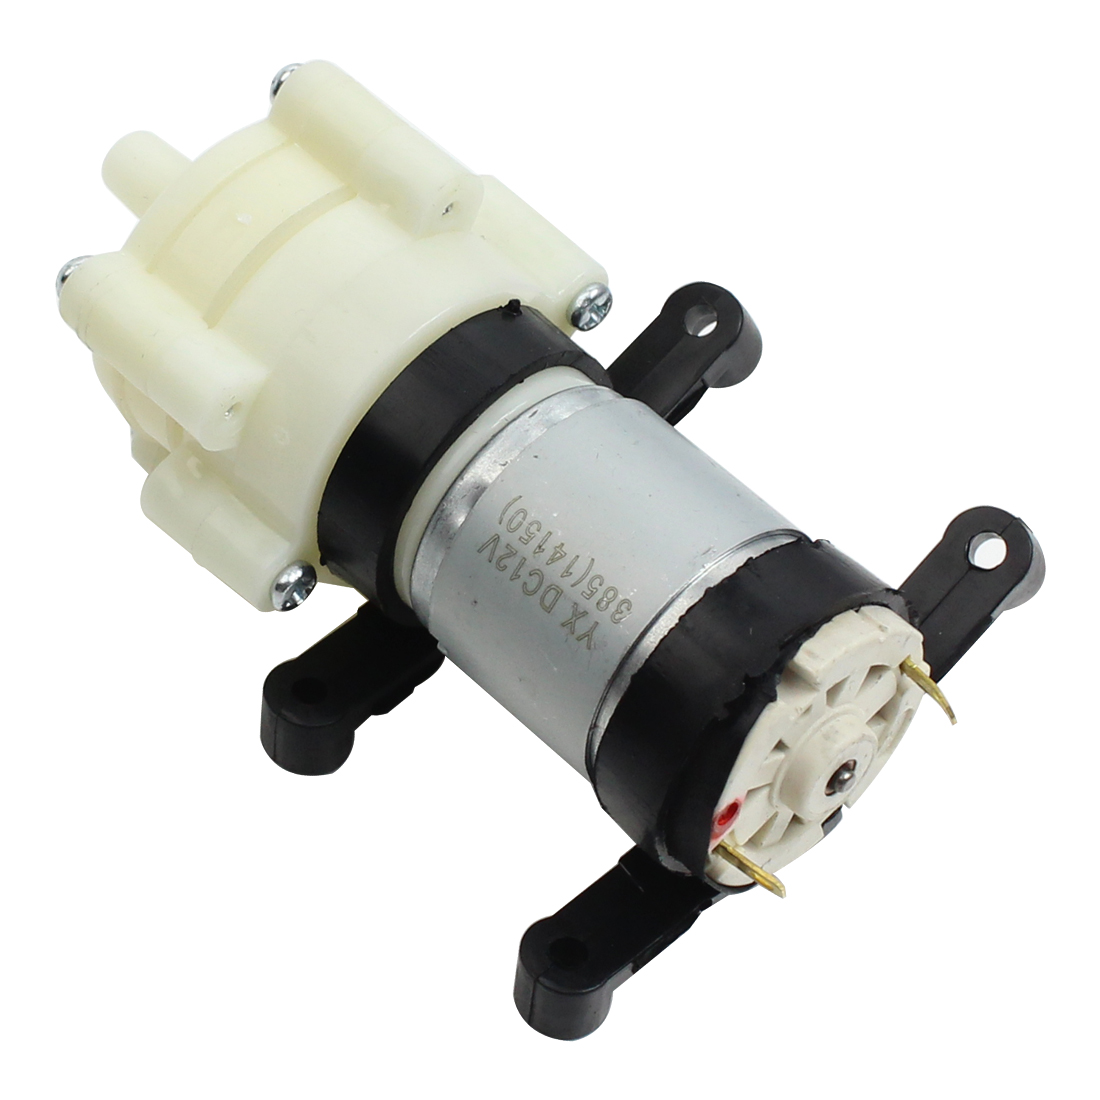 1PC Diaphragm Pump Water Cooling Pump Motor DC12V R385 Water Pumps For Water Fish Tank Small Micropump DIY Model Accessories